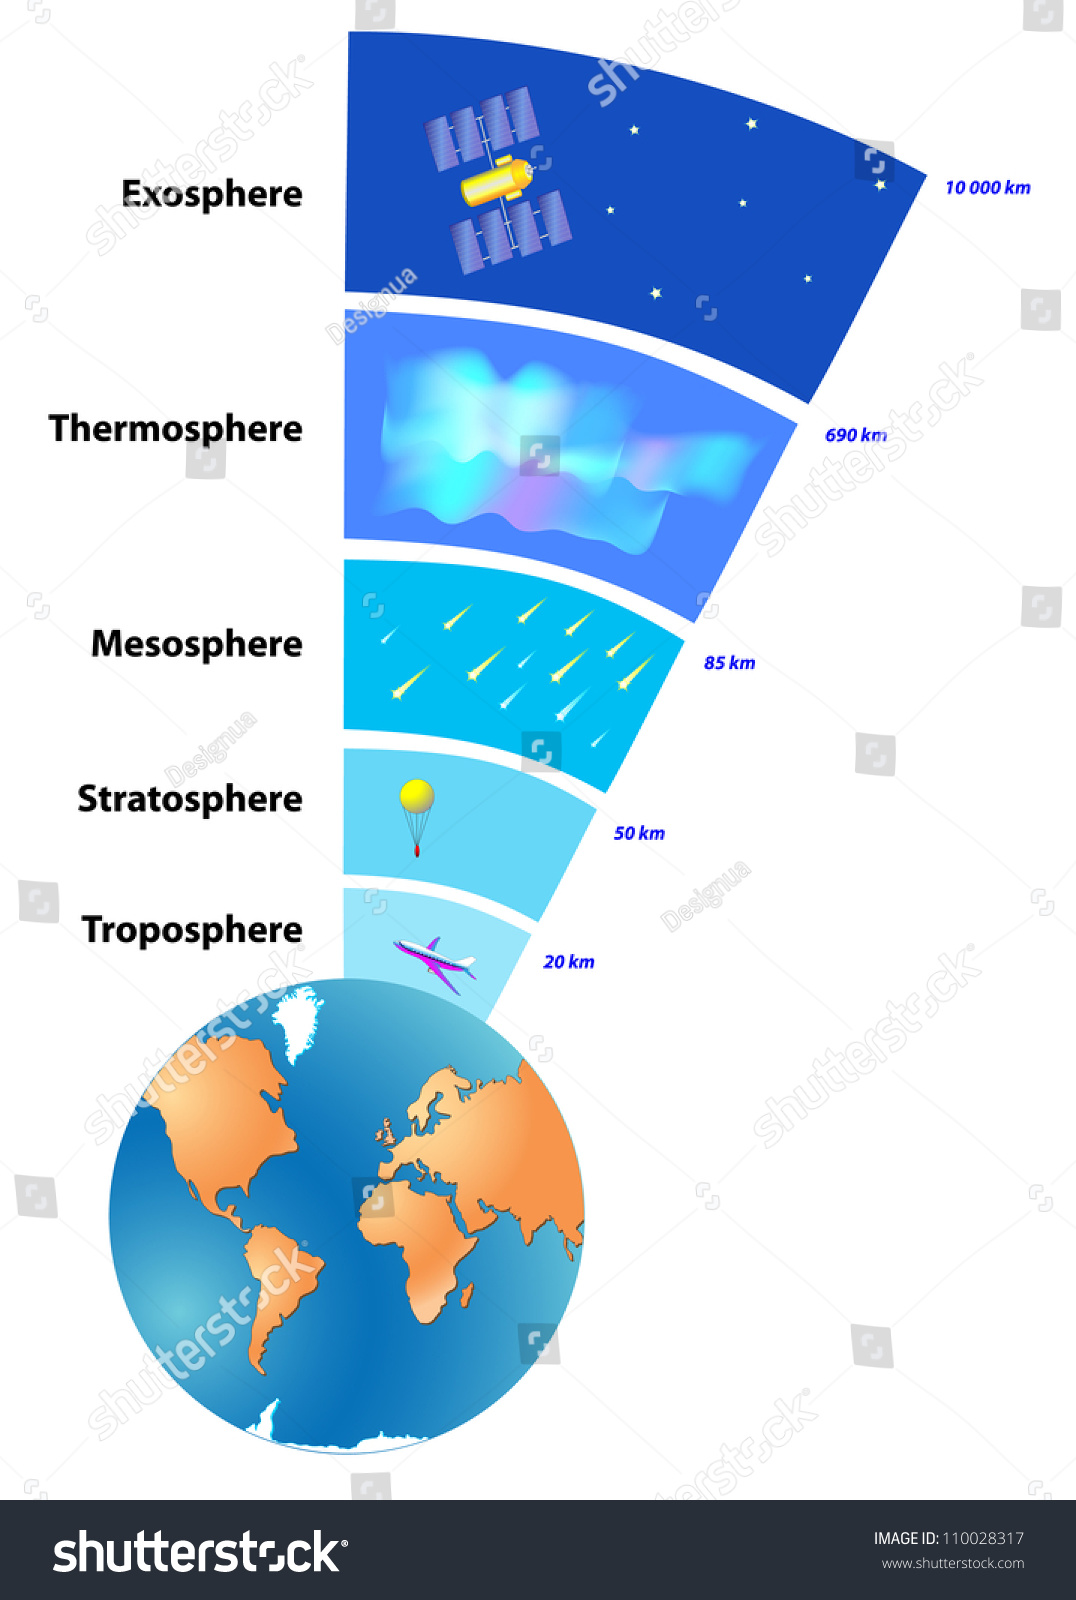 Atmosphere Earth Layer Gases Surrounding Planet Stock